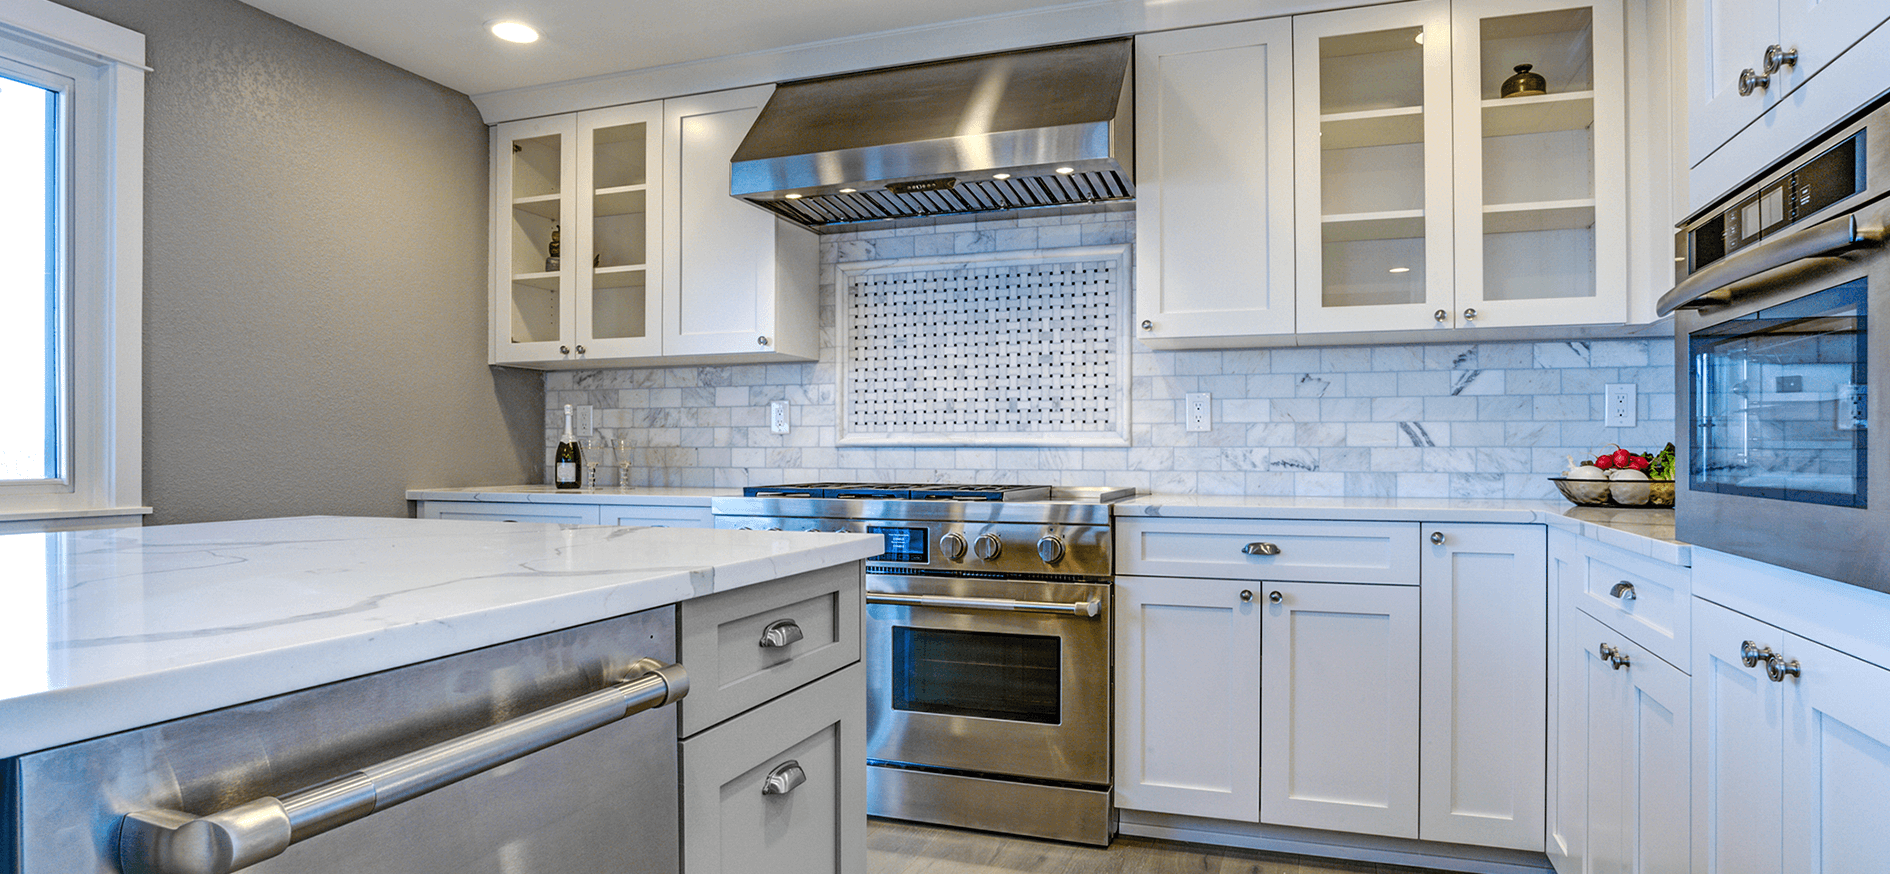 Cabco Cabinetry | Cabinet Design & Installation | Custom ...